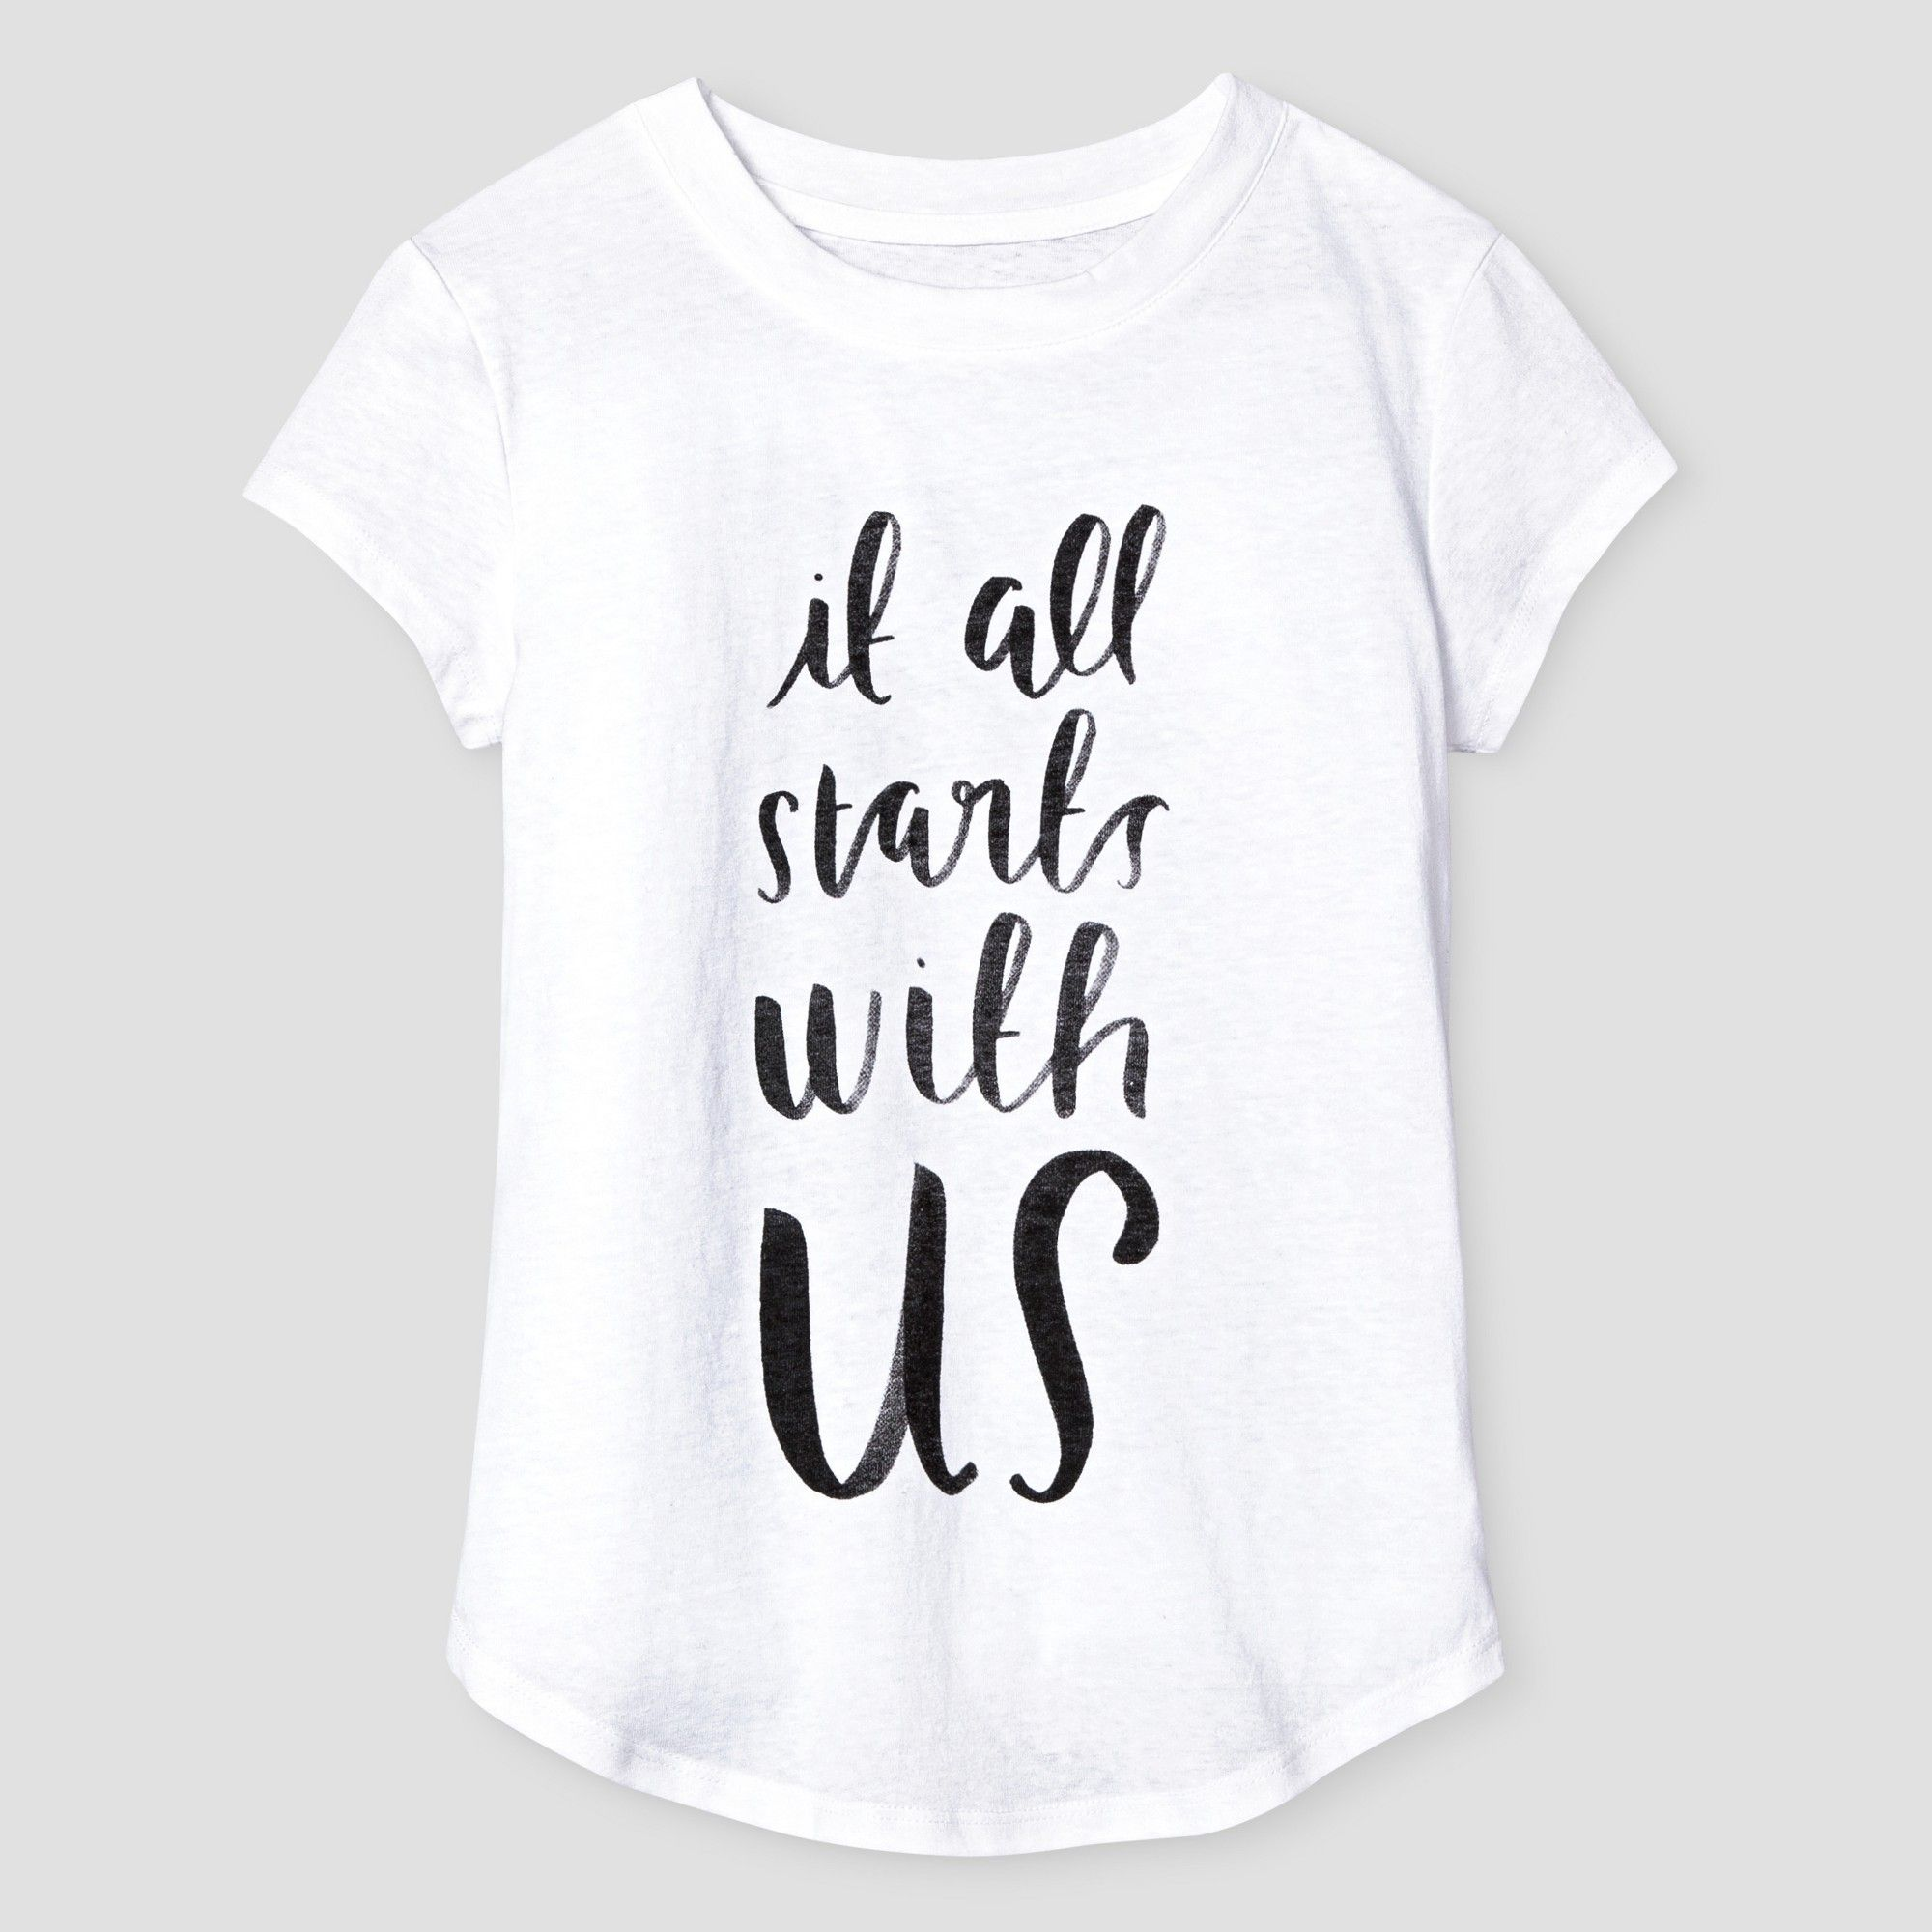 6c9069eb2 Girls  It All Starts With Us Graphic T-Shirt - Cat   Jack White XL ...